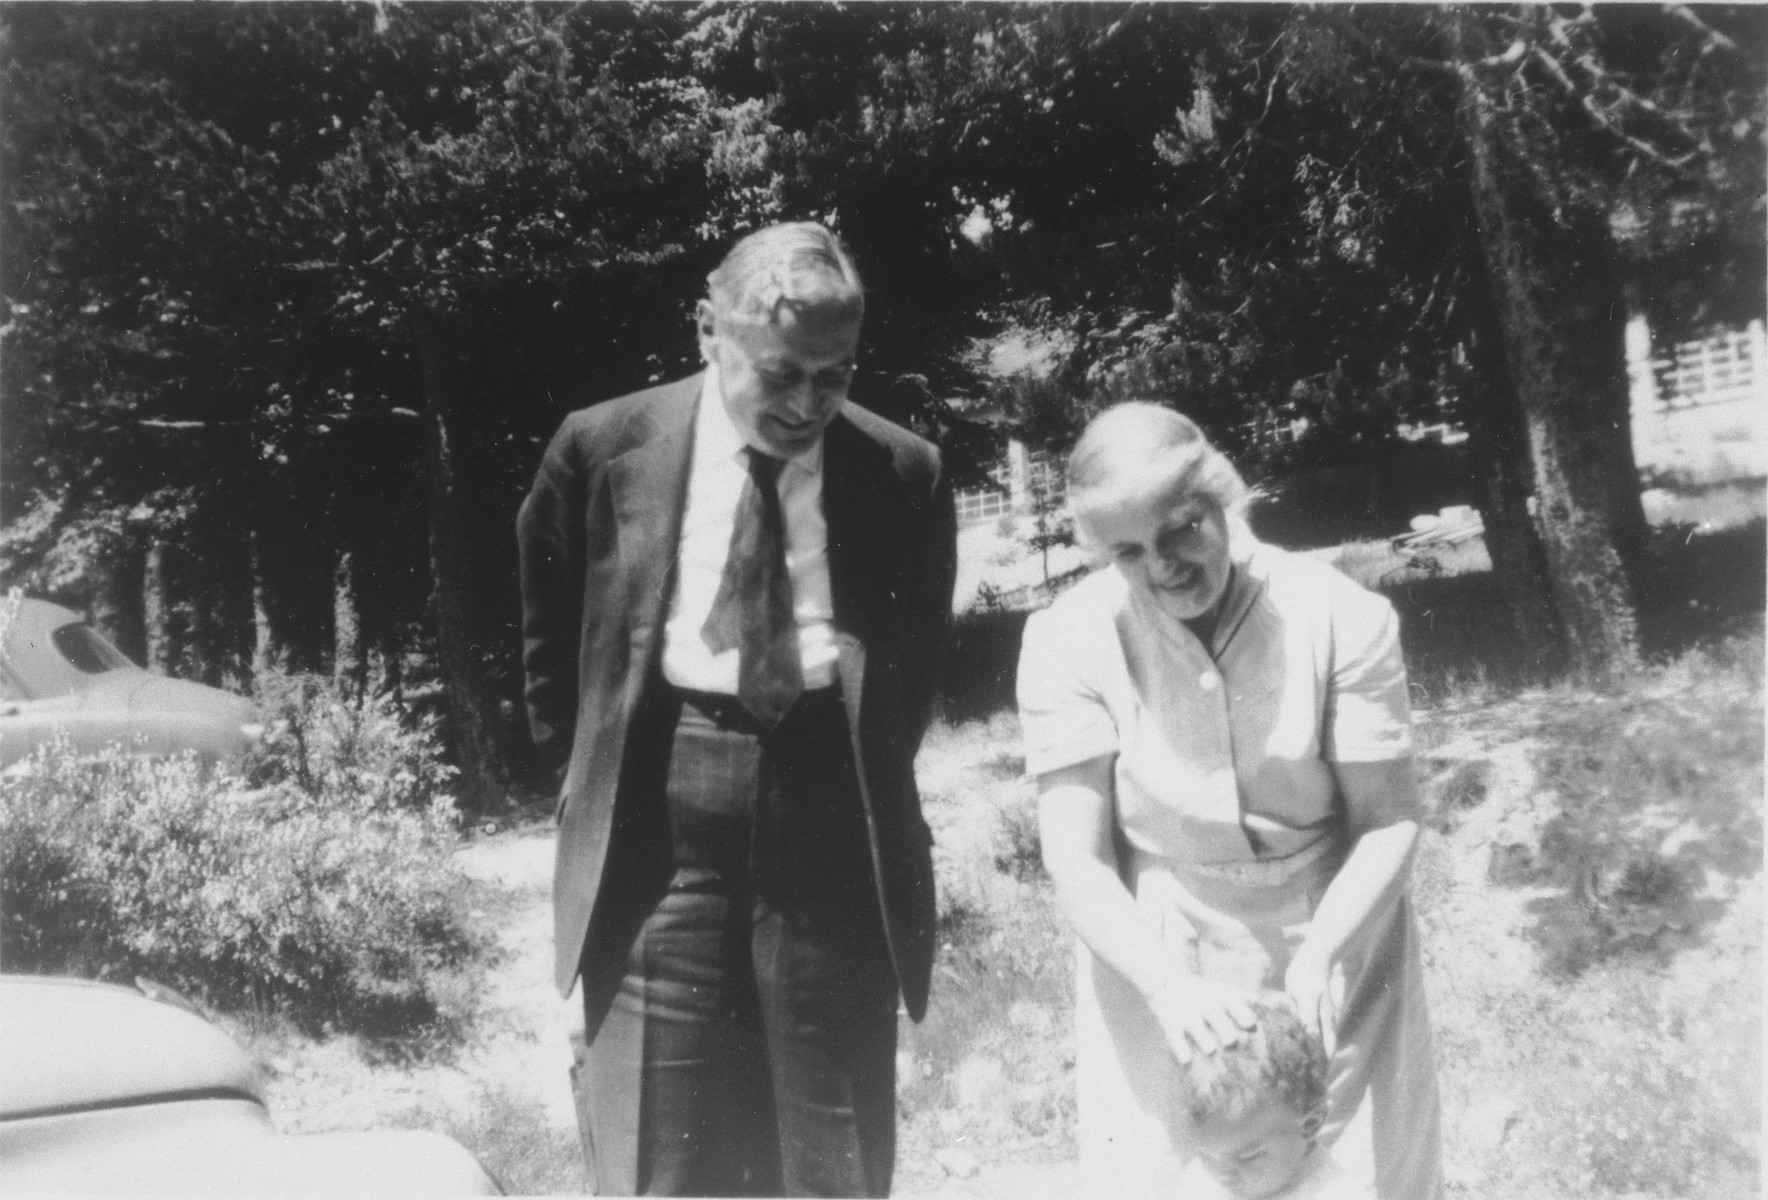 Pastor Edouard and Mildred Theis in the yard of their home.